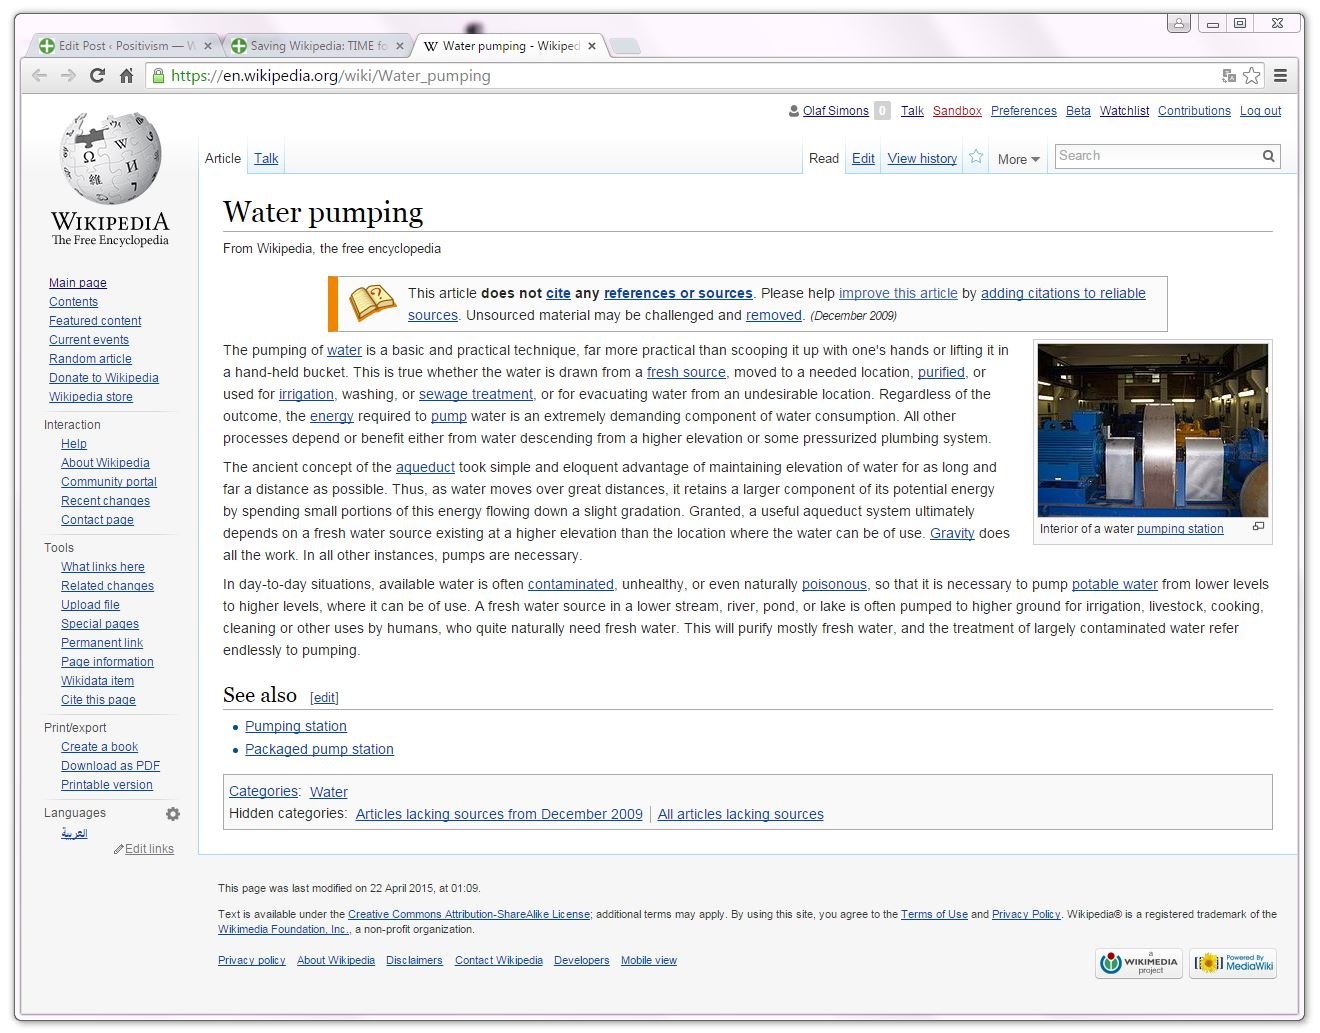 https://en.wikipedia.org/wiki/Water_pumping